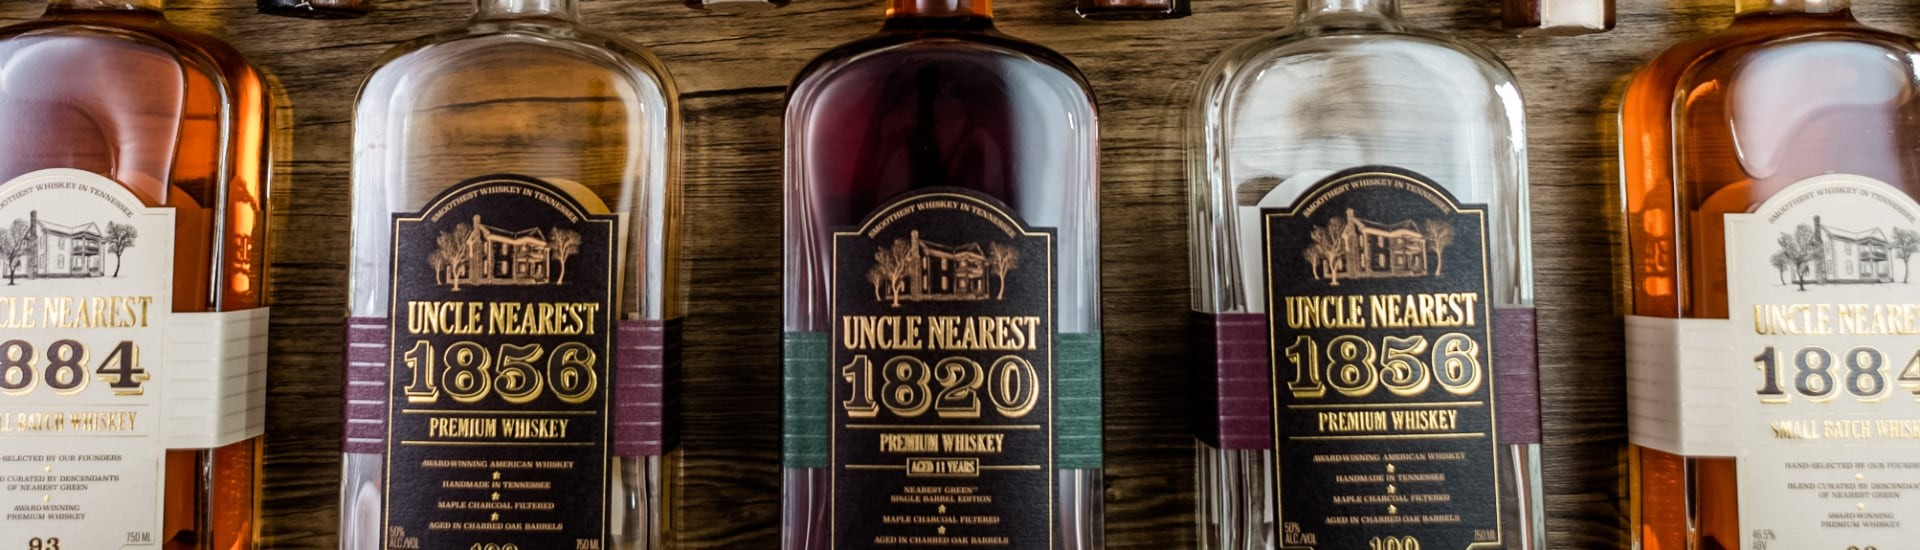 Uncle Nearest Whiskey Review